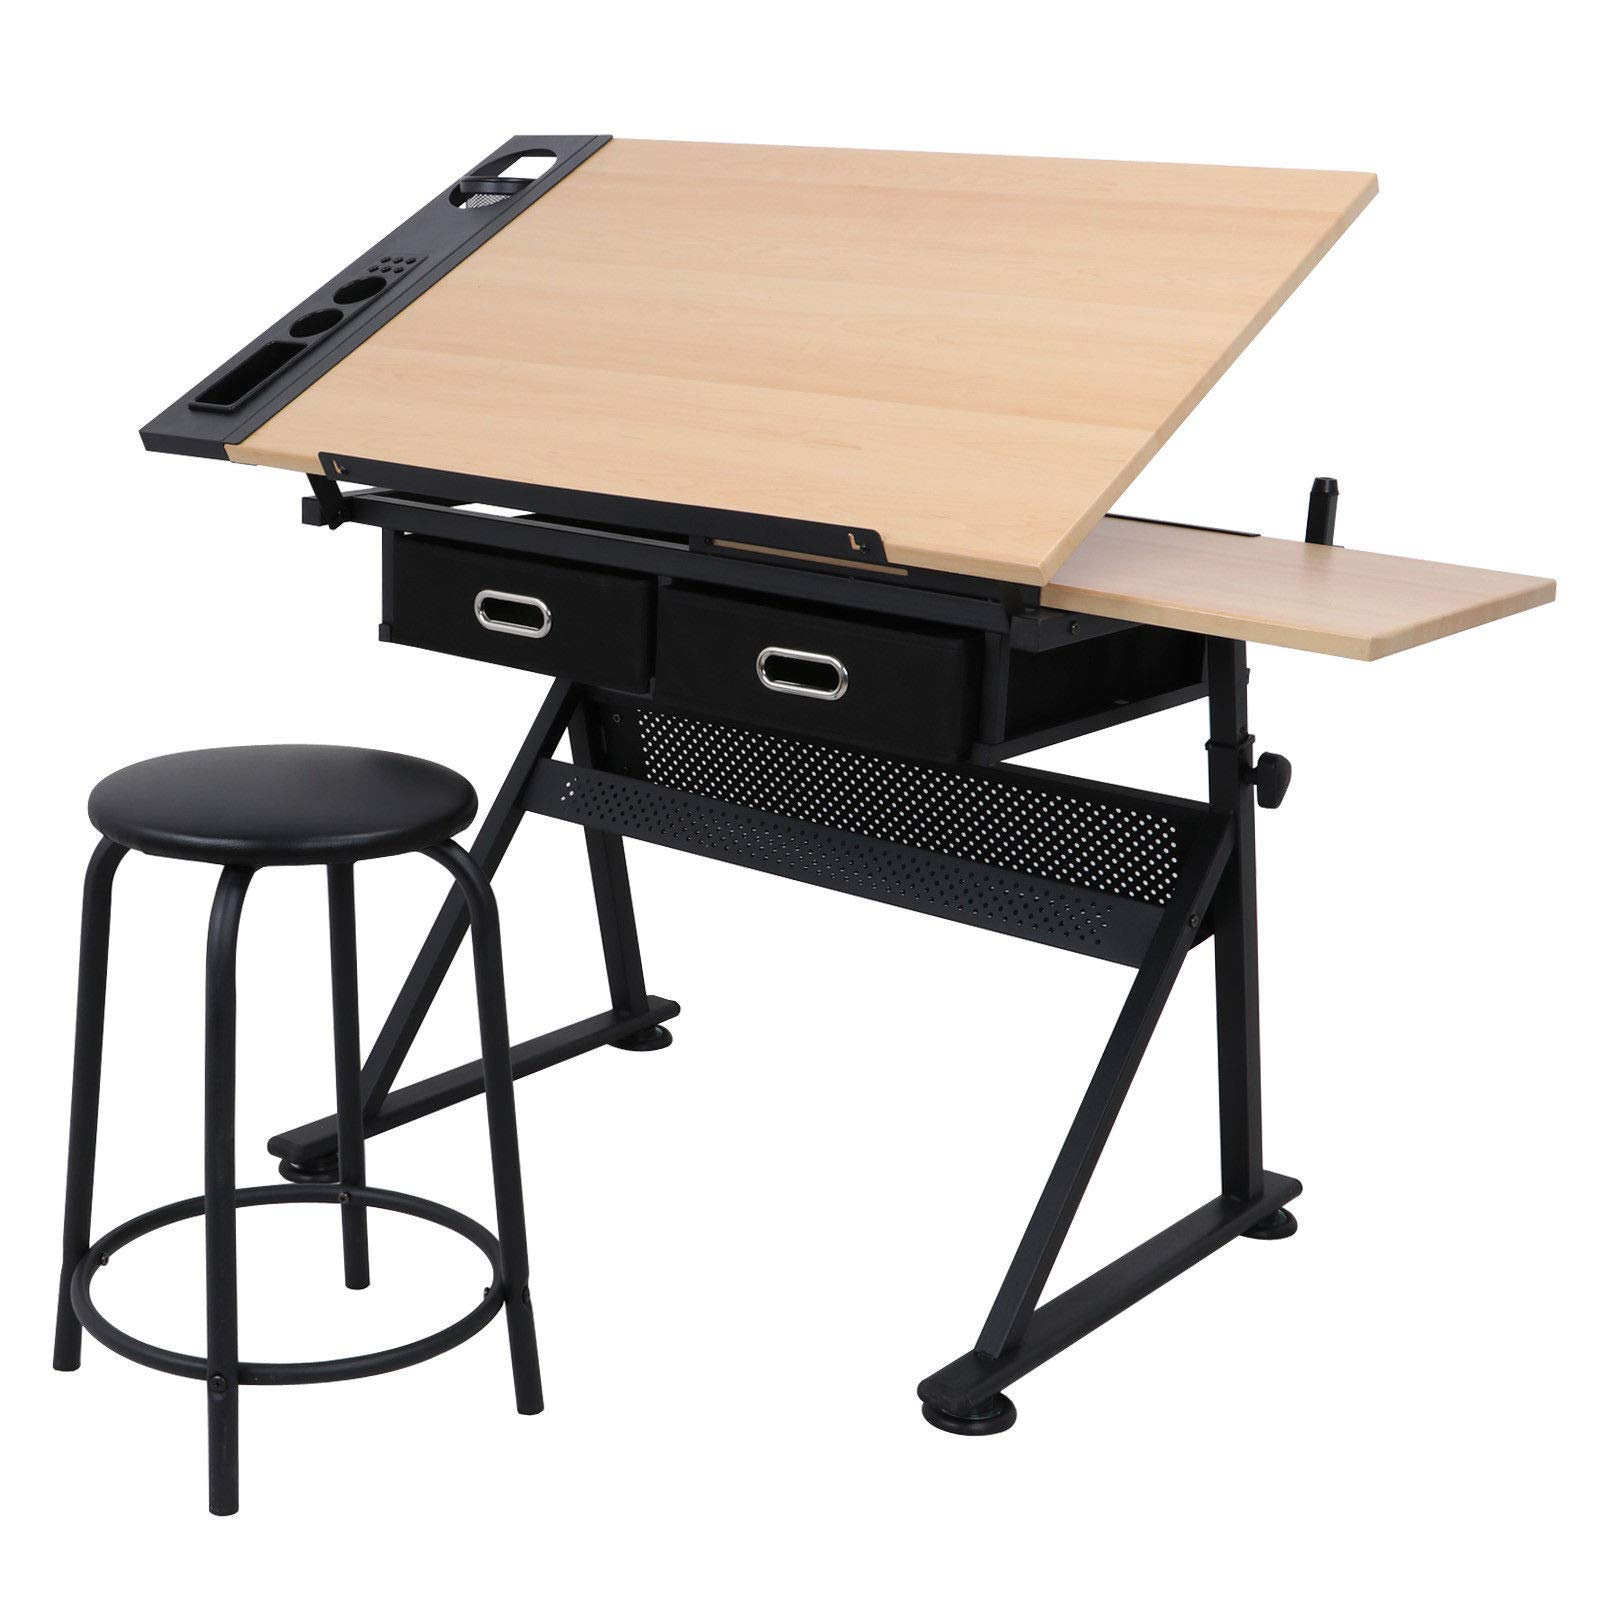 Cirocco Height Adjustable Drawing Drafting Table Desk w/Drawer Chair Stool | Tiltable Board Tabletop Office Workstation Durable Ergonomic Wide Ample Storage for Crafting Reading Painting Writing Art